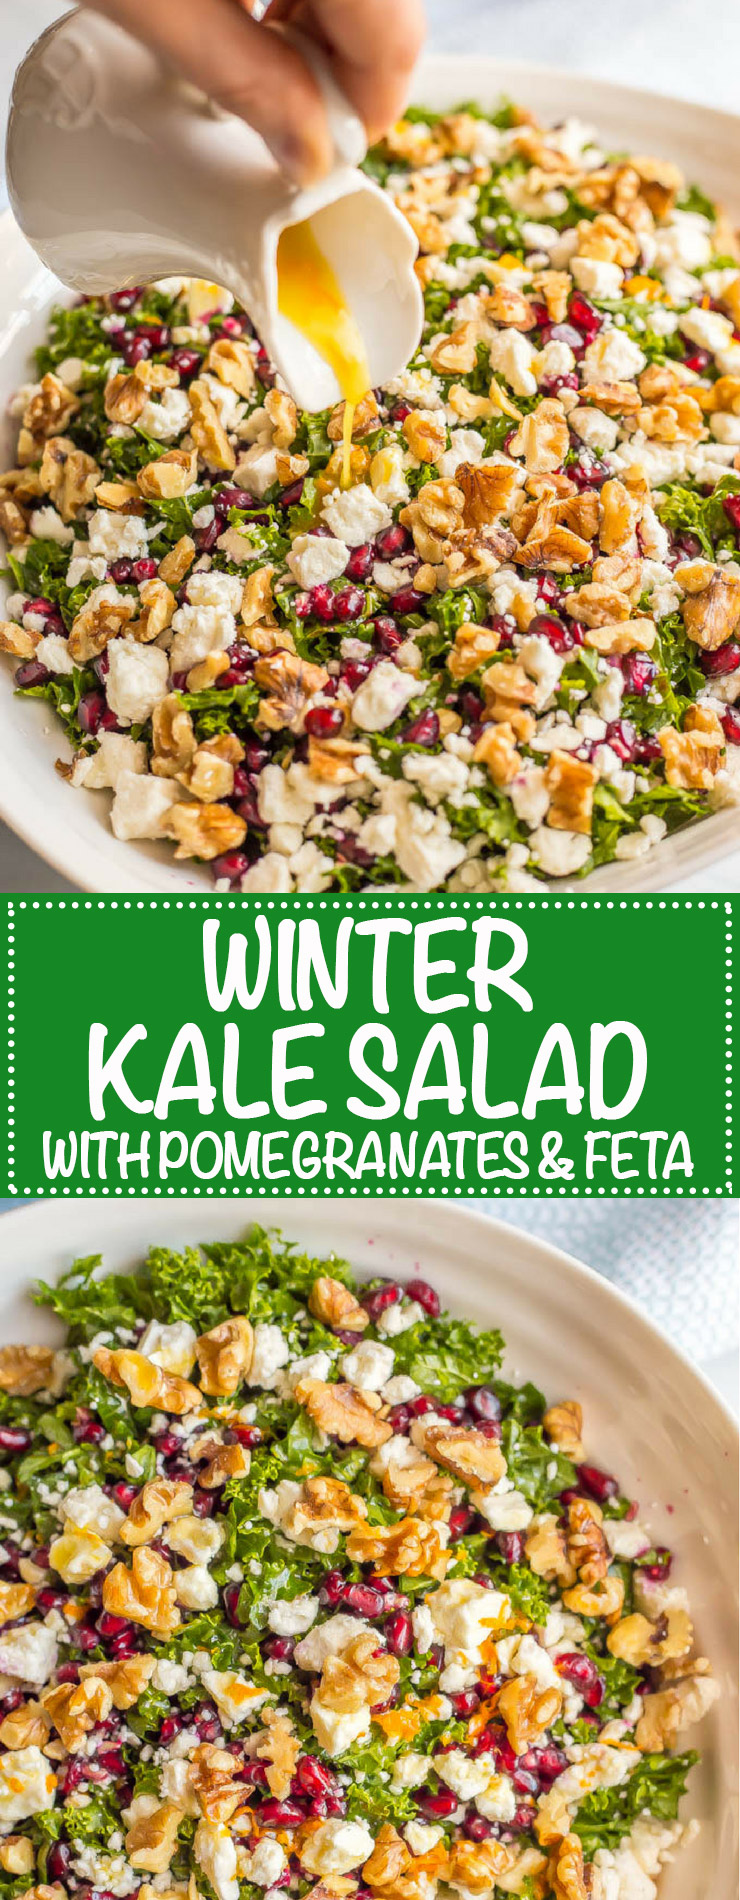 Winter kale salad with pomegranates, feta cheese, walnuts and an easy citrus dressing is perfect for a bright, fresh side dish or light lunch and can be prepped ahead for a healthy week! #kalesalad #healthysalad #easyrecipe #wintersalad | www.familyfoodonthetable